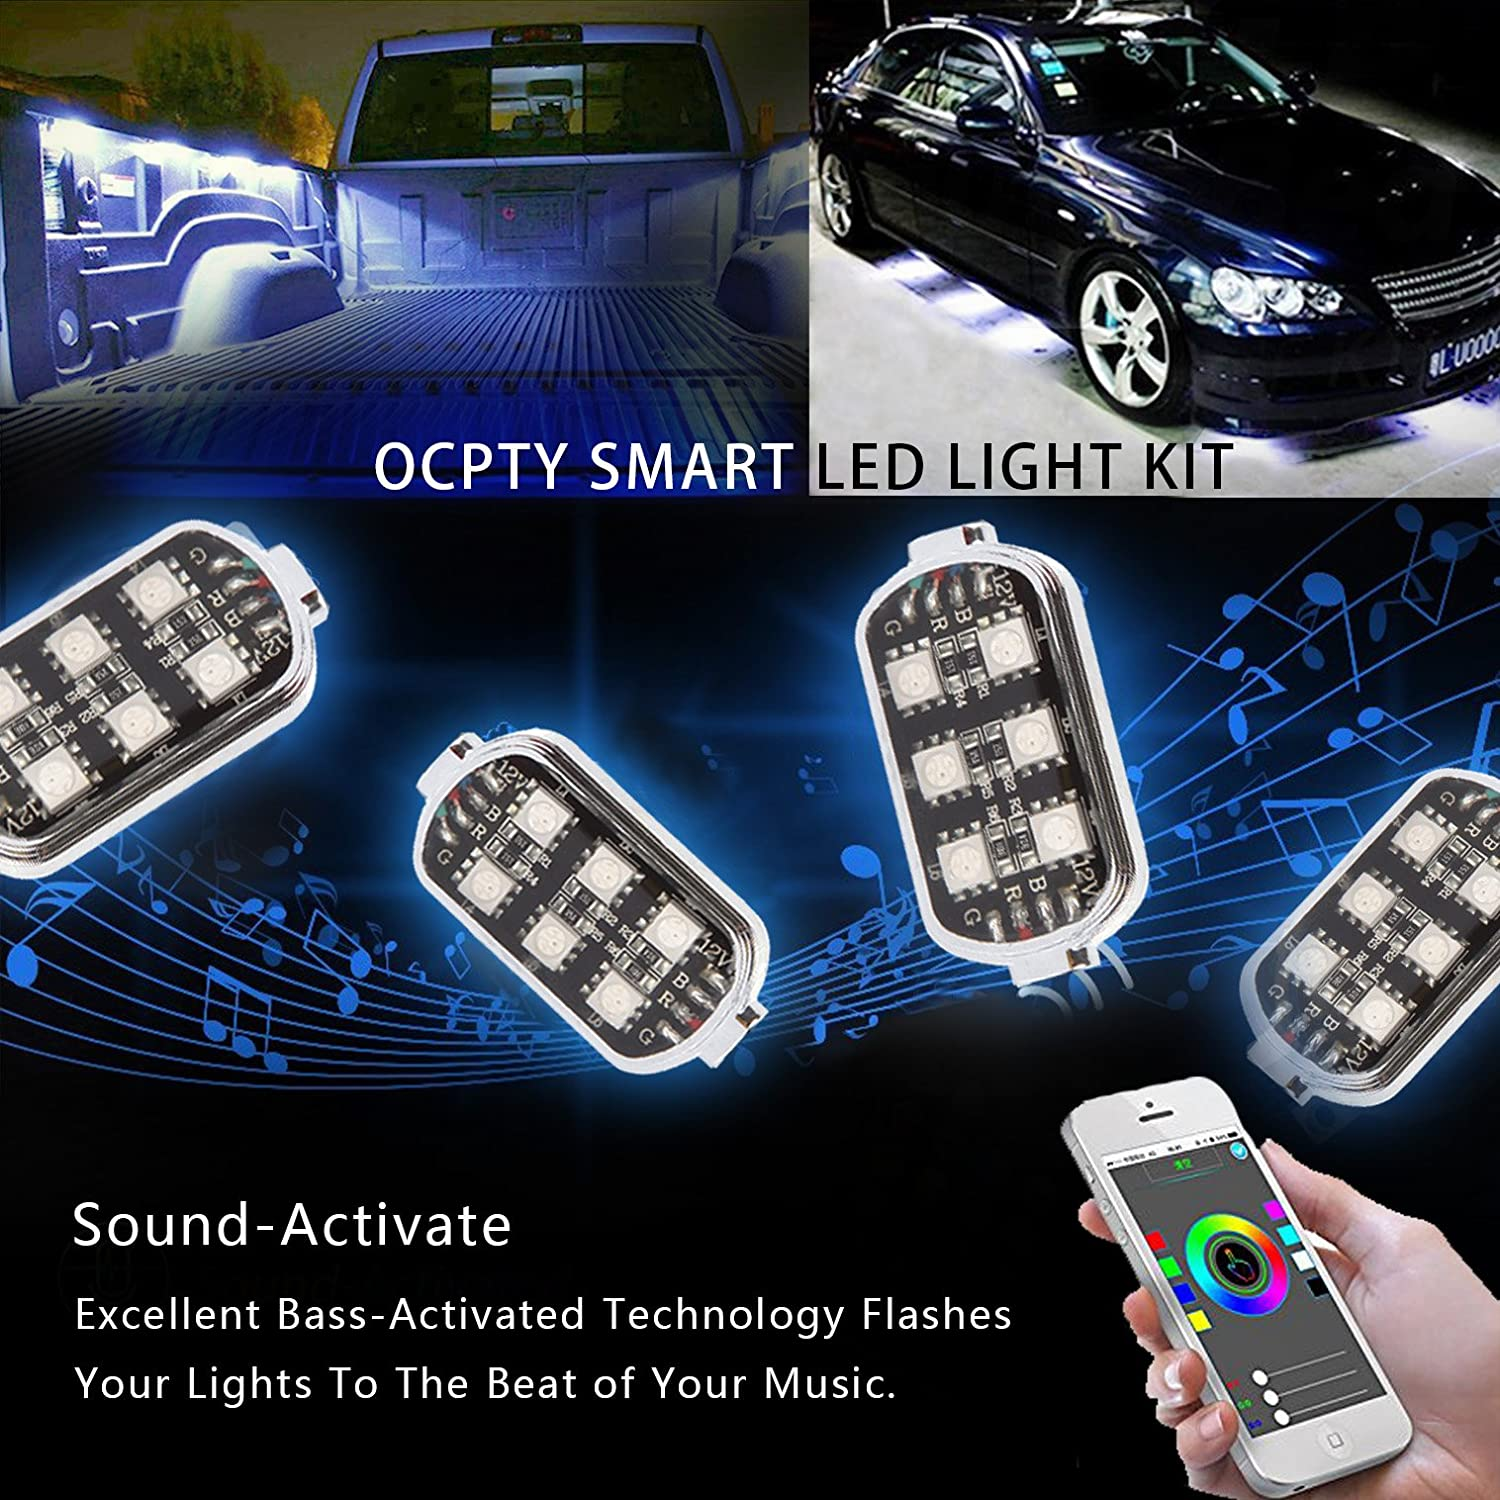 OCPTY RGB Truck Bed Light Kit LED Rock Lights With Sound Activated Camera Function Wireless Remote Bluetooth Controller Universal fit for Pickup Truck RV SUV Boats Unloading Cargo Area 8pod